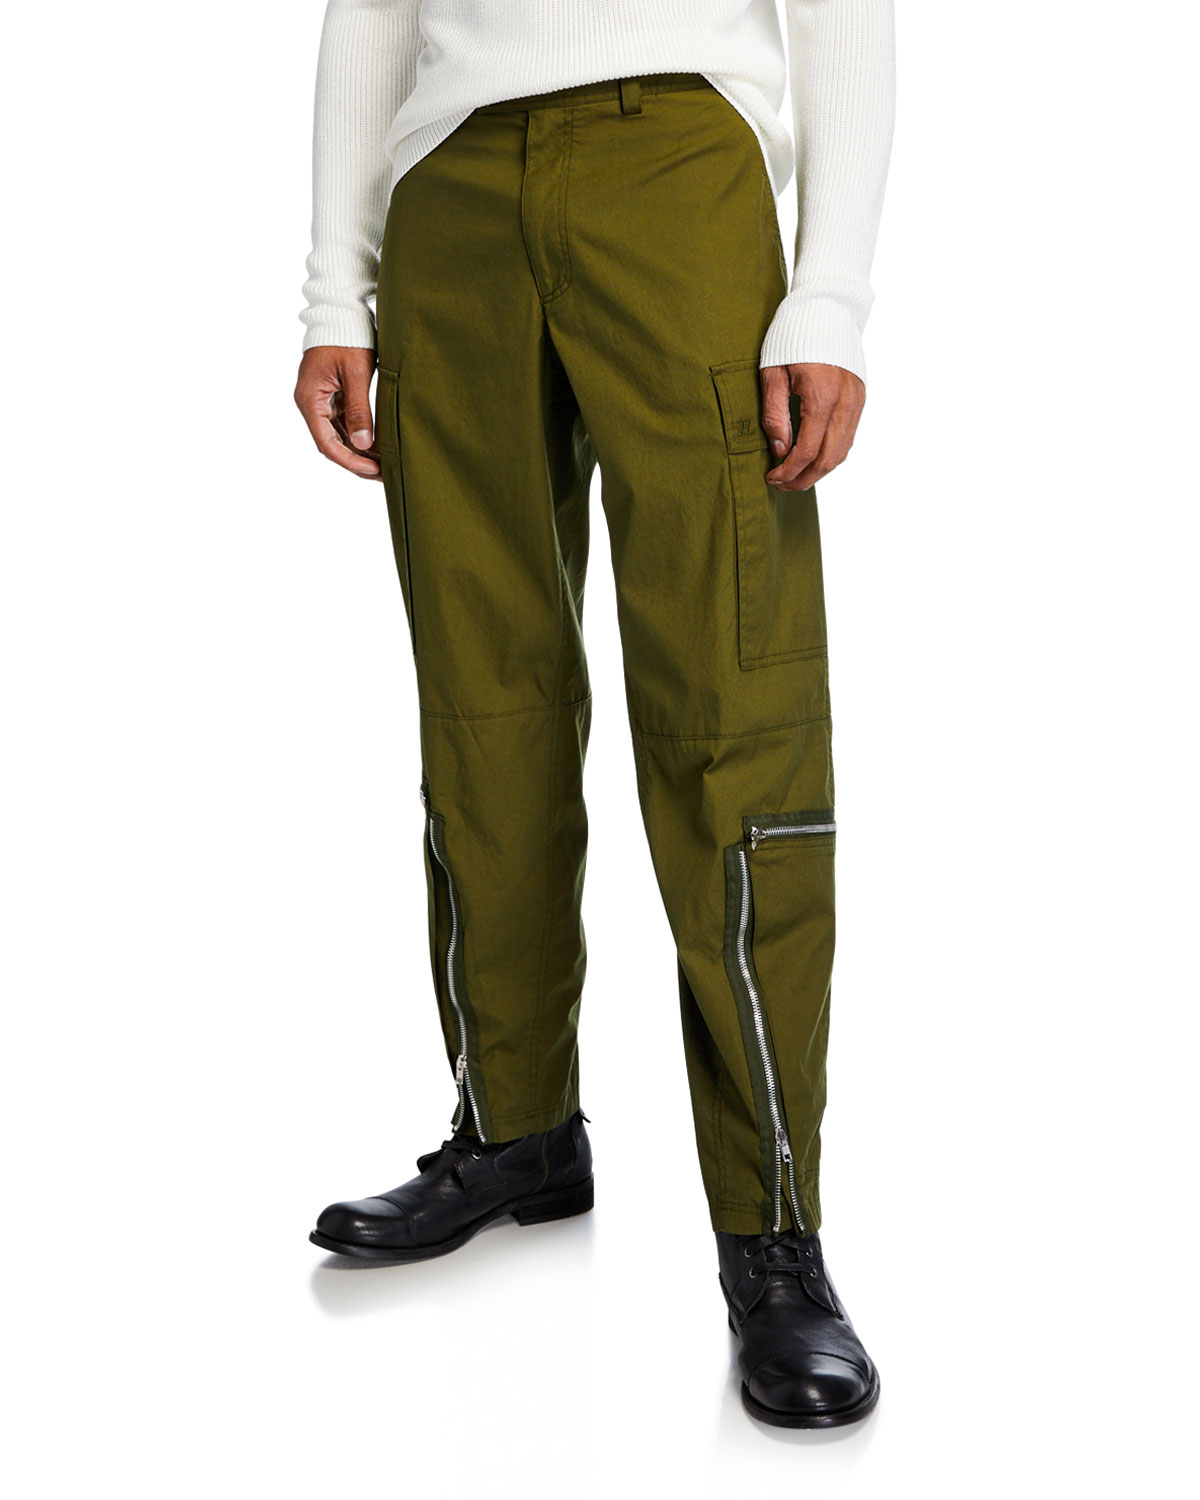 Helmut Lang Pants MEN'S AVIATOR PANTS